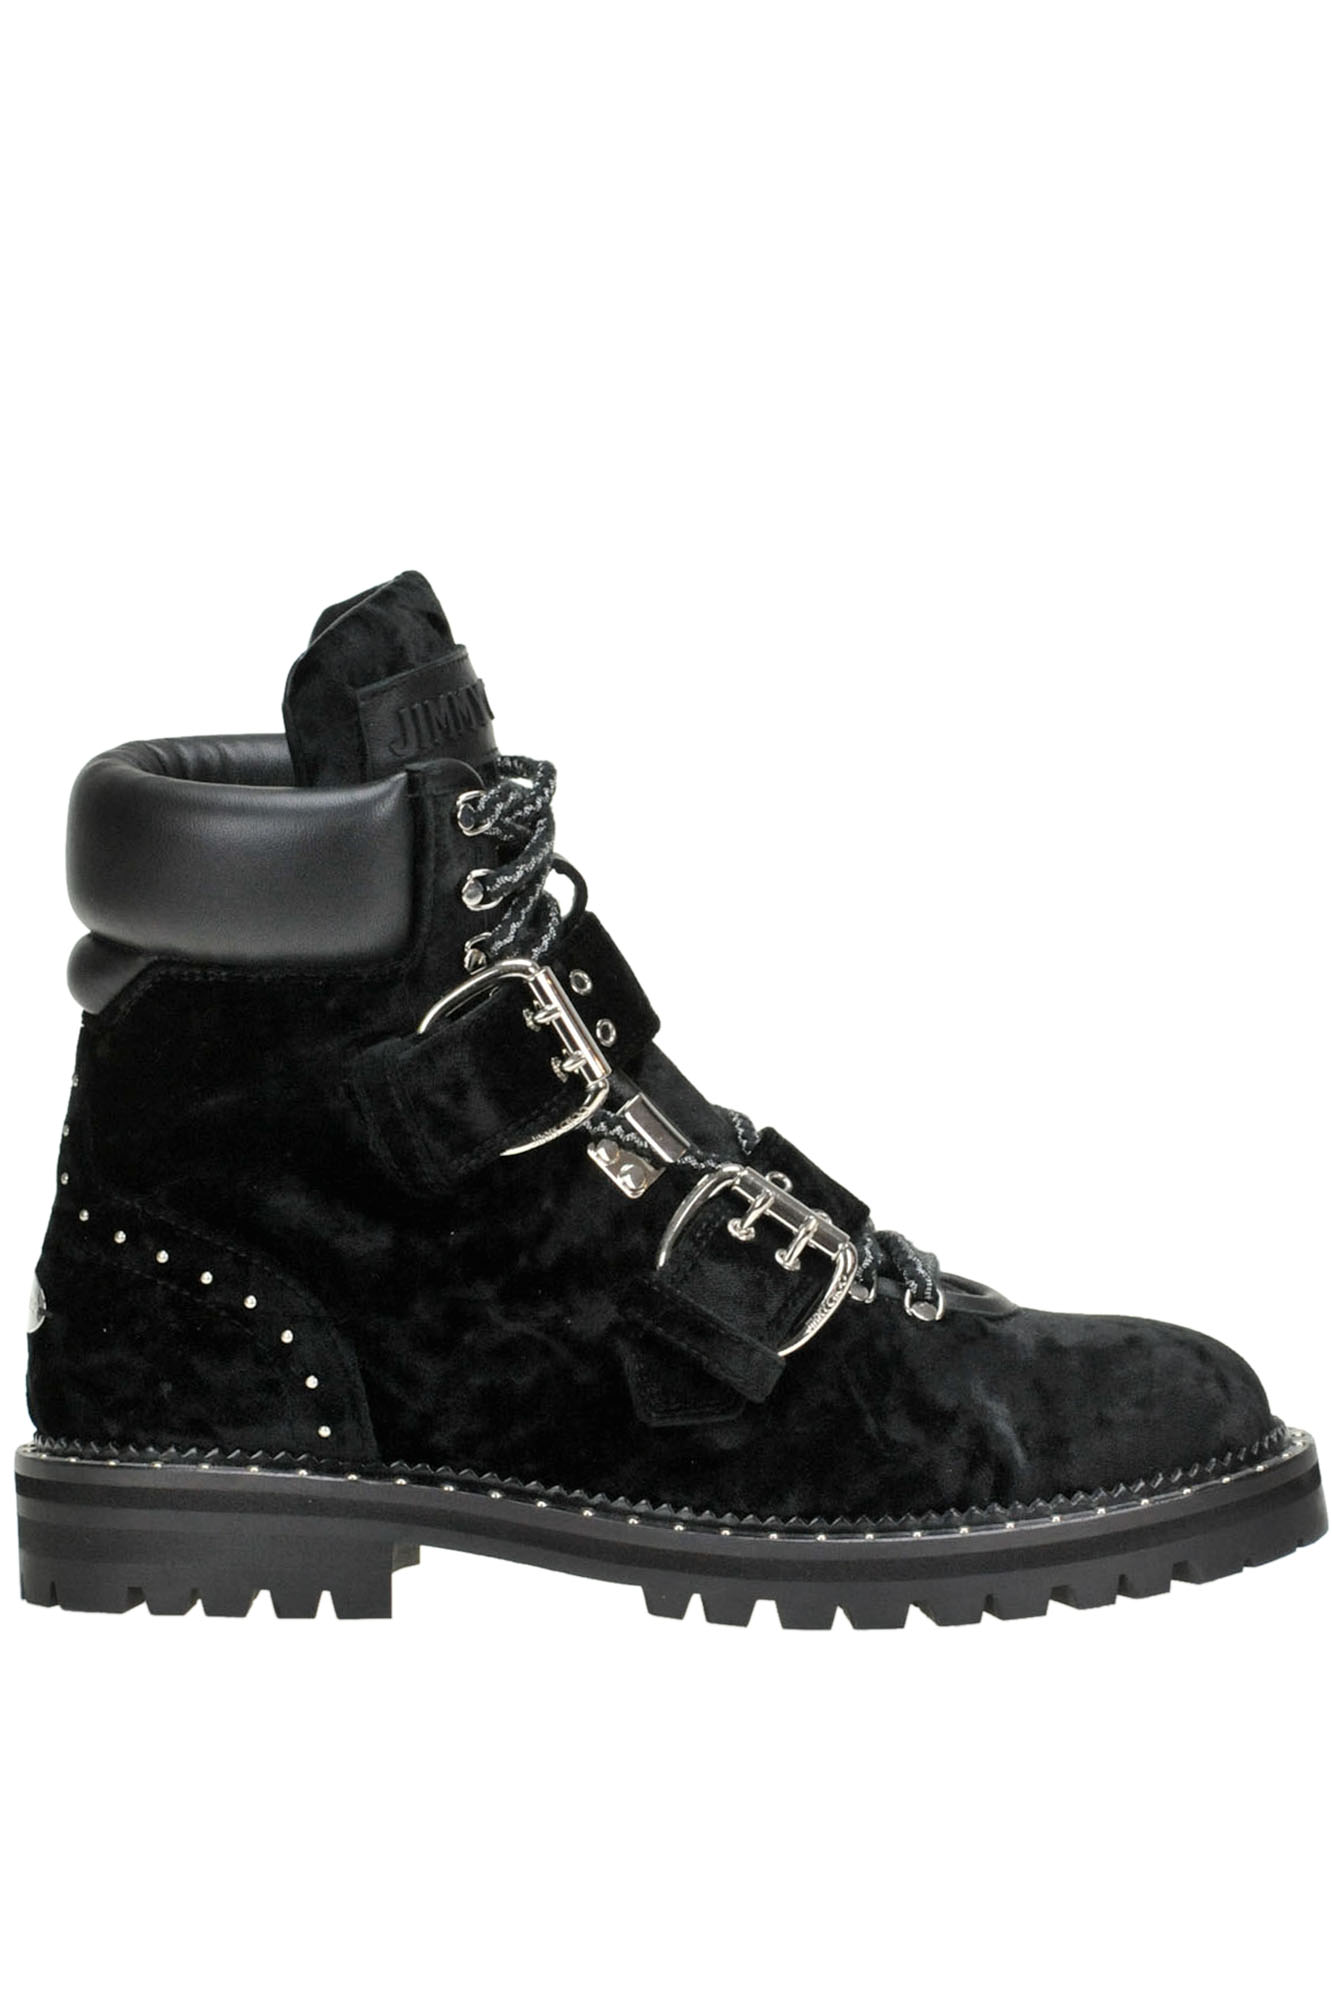 4ea7eb8bf1d5 Jimmy Choo Breeze Velvet Lace-Up Boots In Black